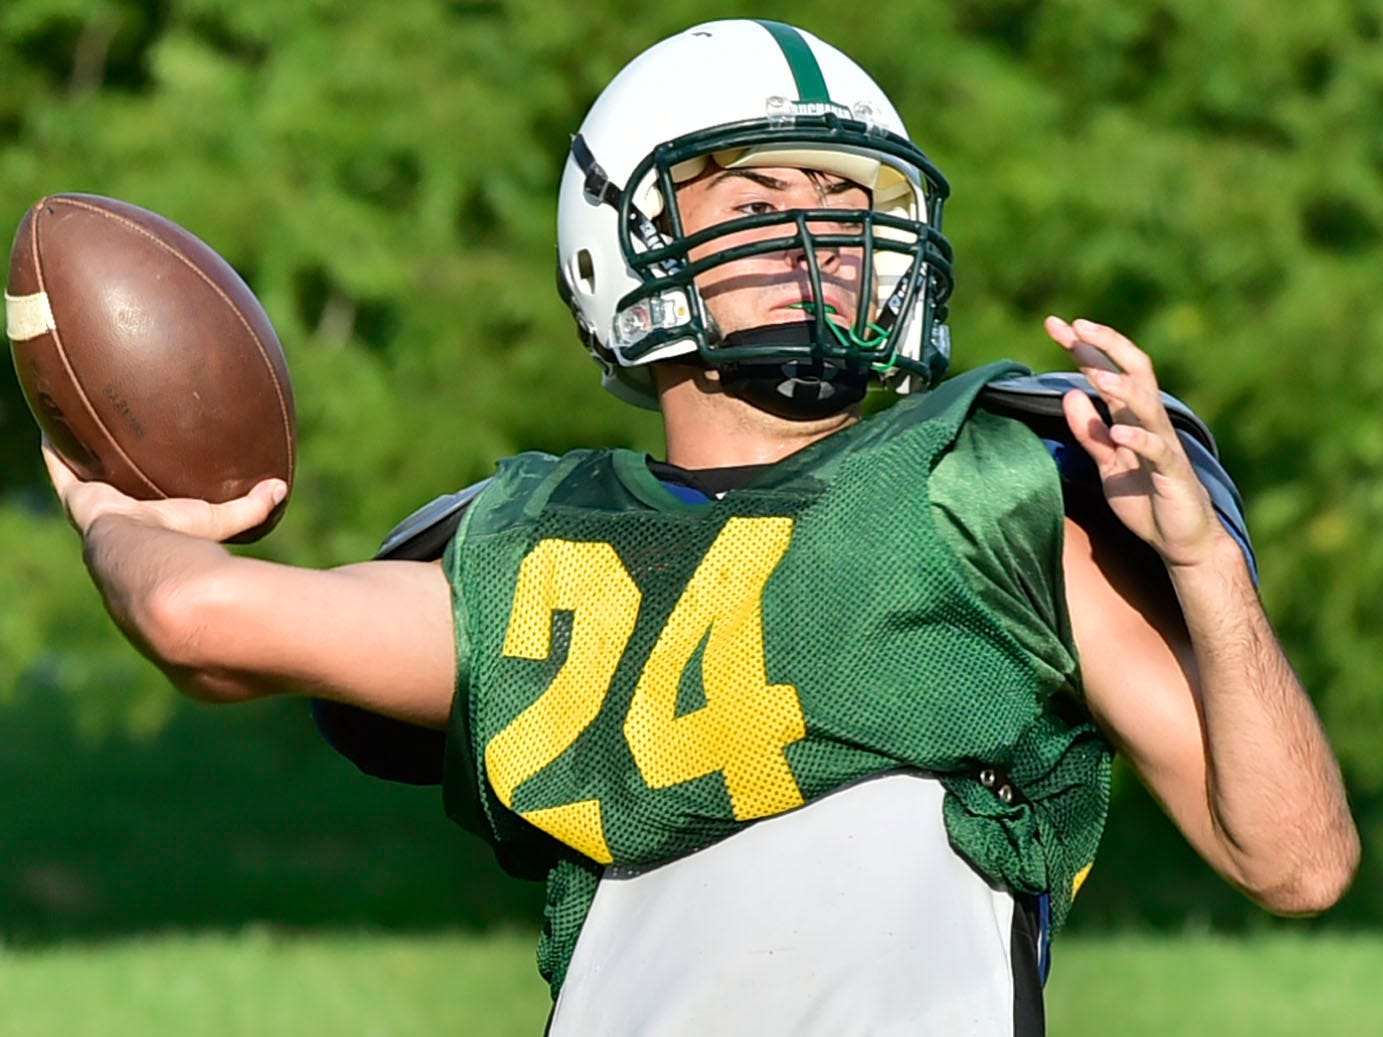 Sabastian Wise thrws the bll during drills for the Rockets. James Buchanan High School football players practice on Wednesday, August 8, 2018.